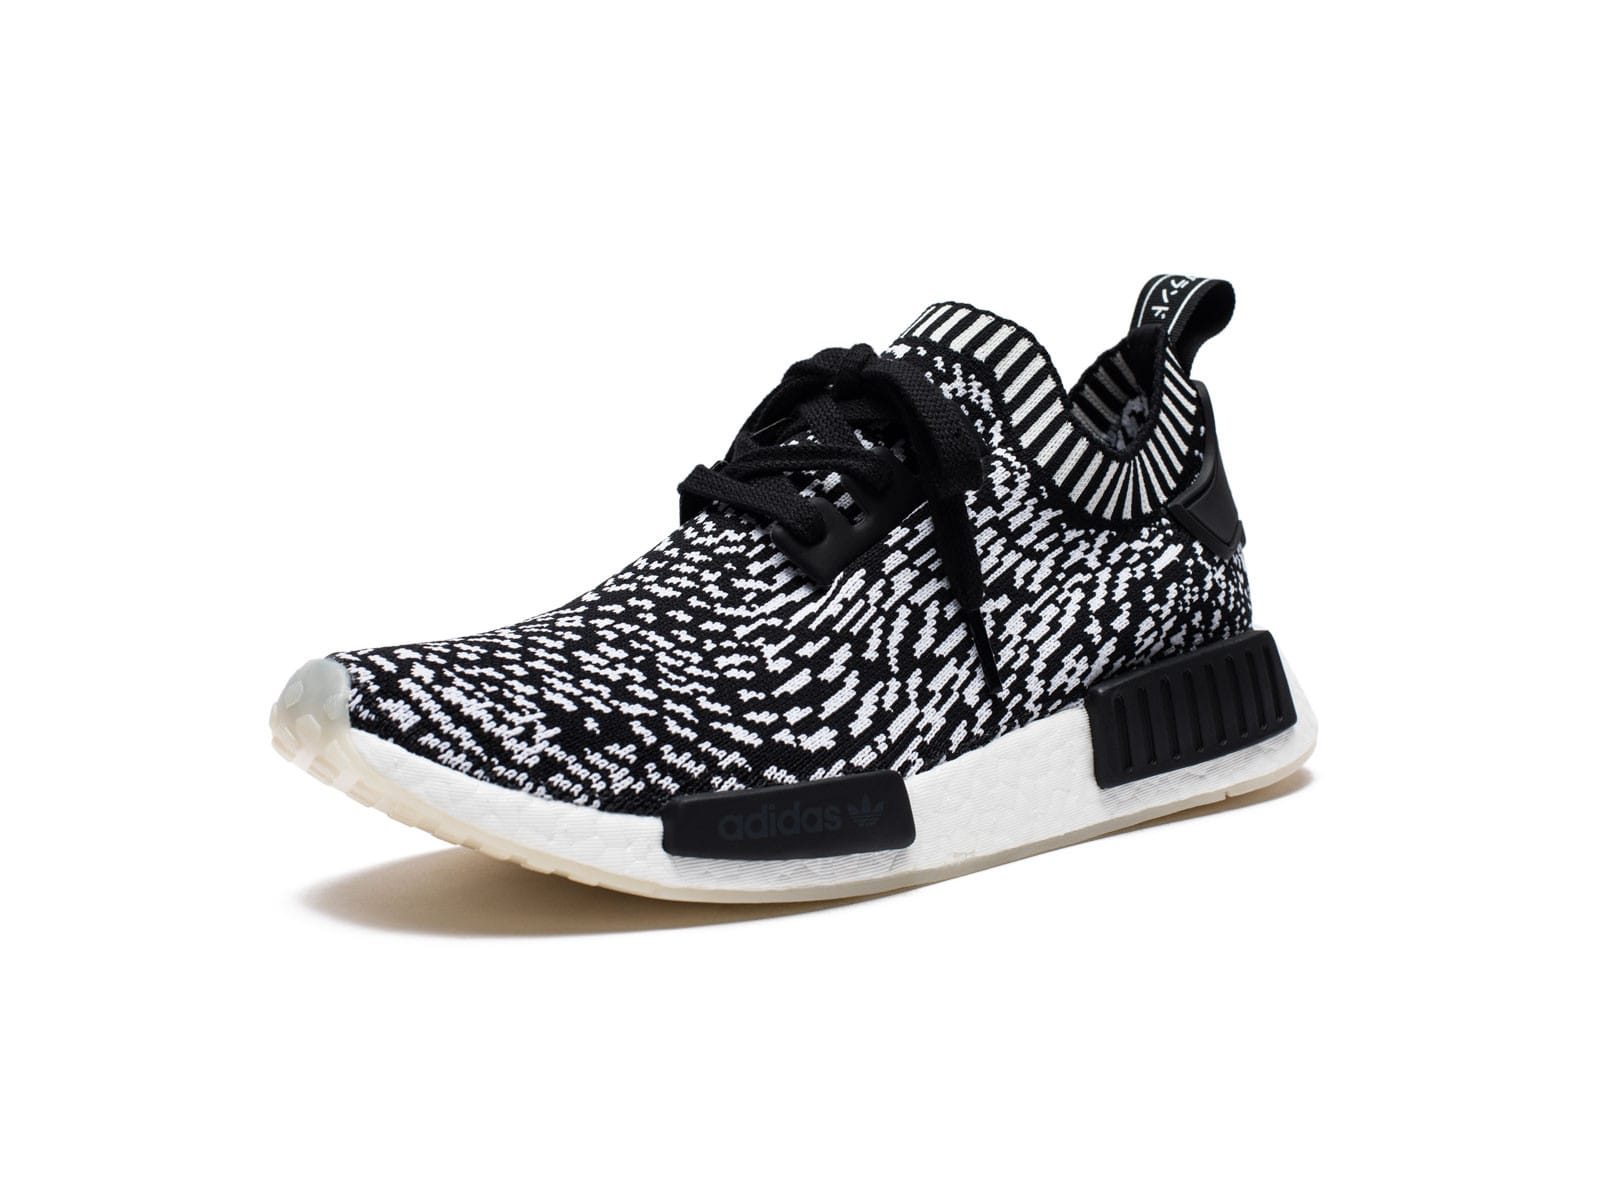 online retailer b74c3 f46dd NMD R1 PK - BLACK/WHITE | Undefeated